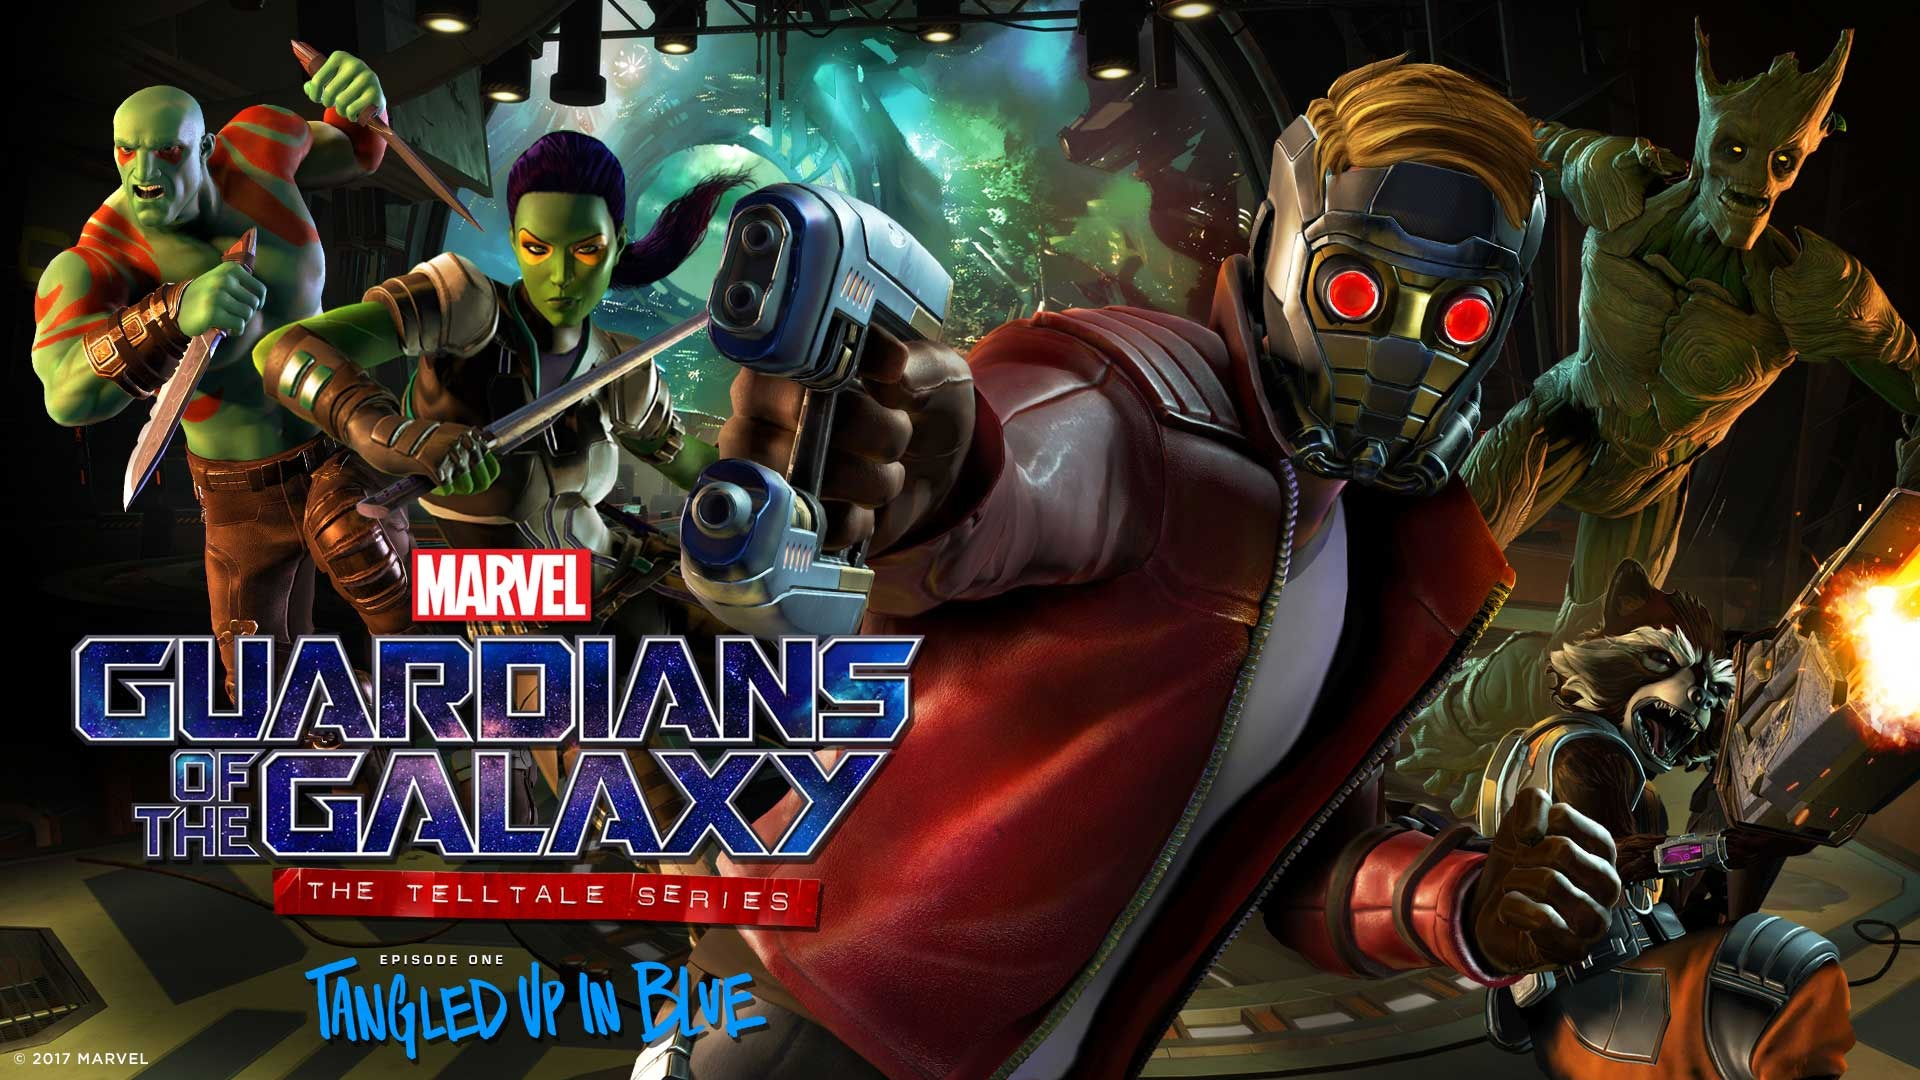 Guardians of the Galaxy Episode 1